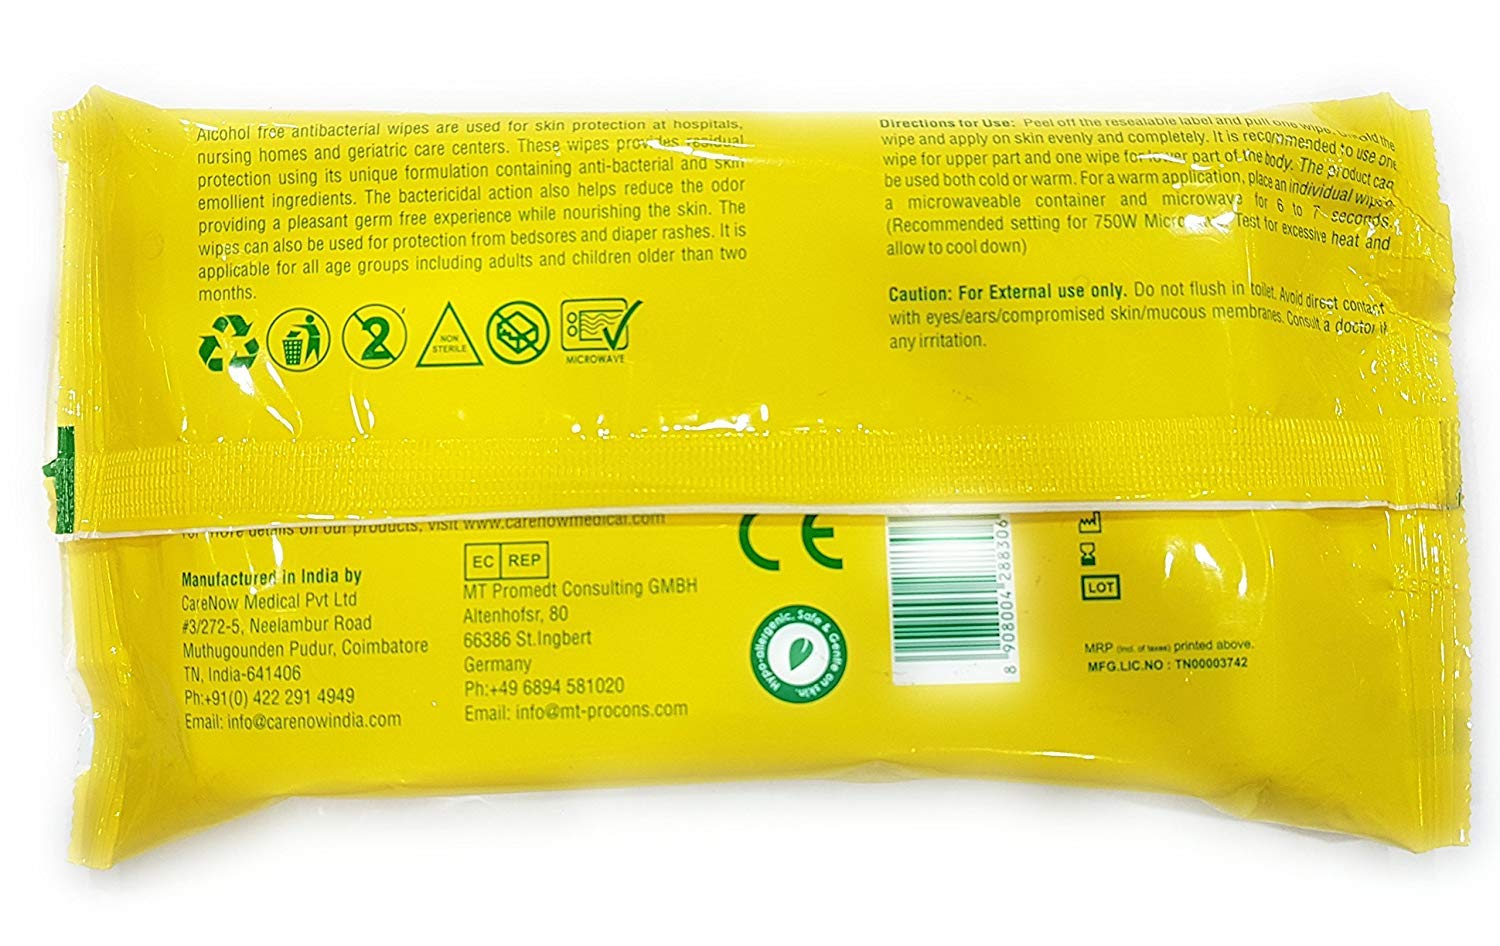 Eco Protect Skin Antiseptic Adult Bathing Wipes - X Large 10 Wipes by Carenow